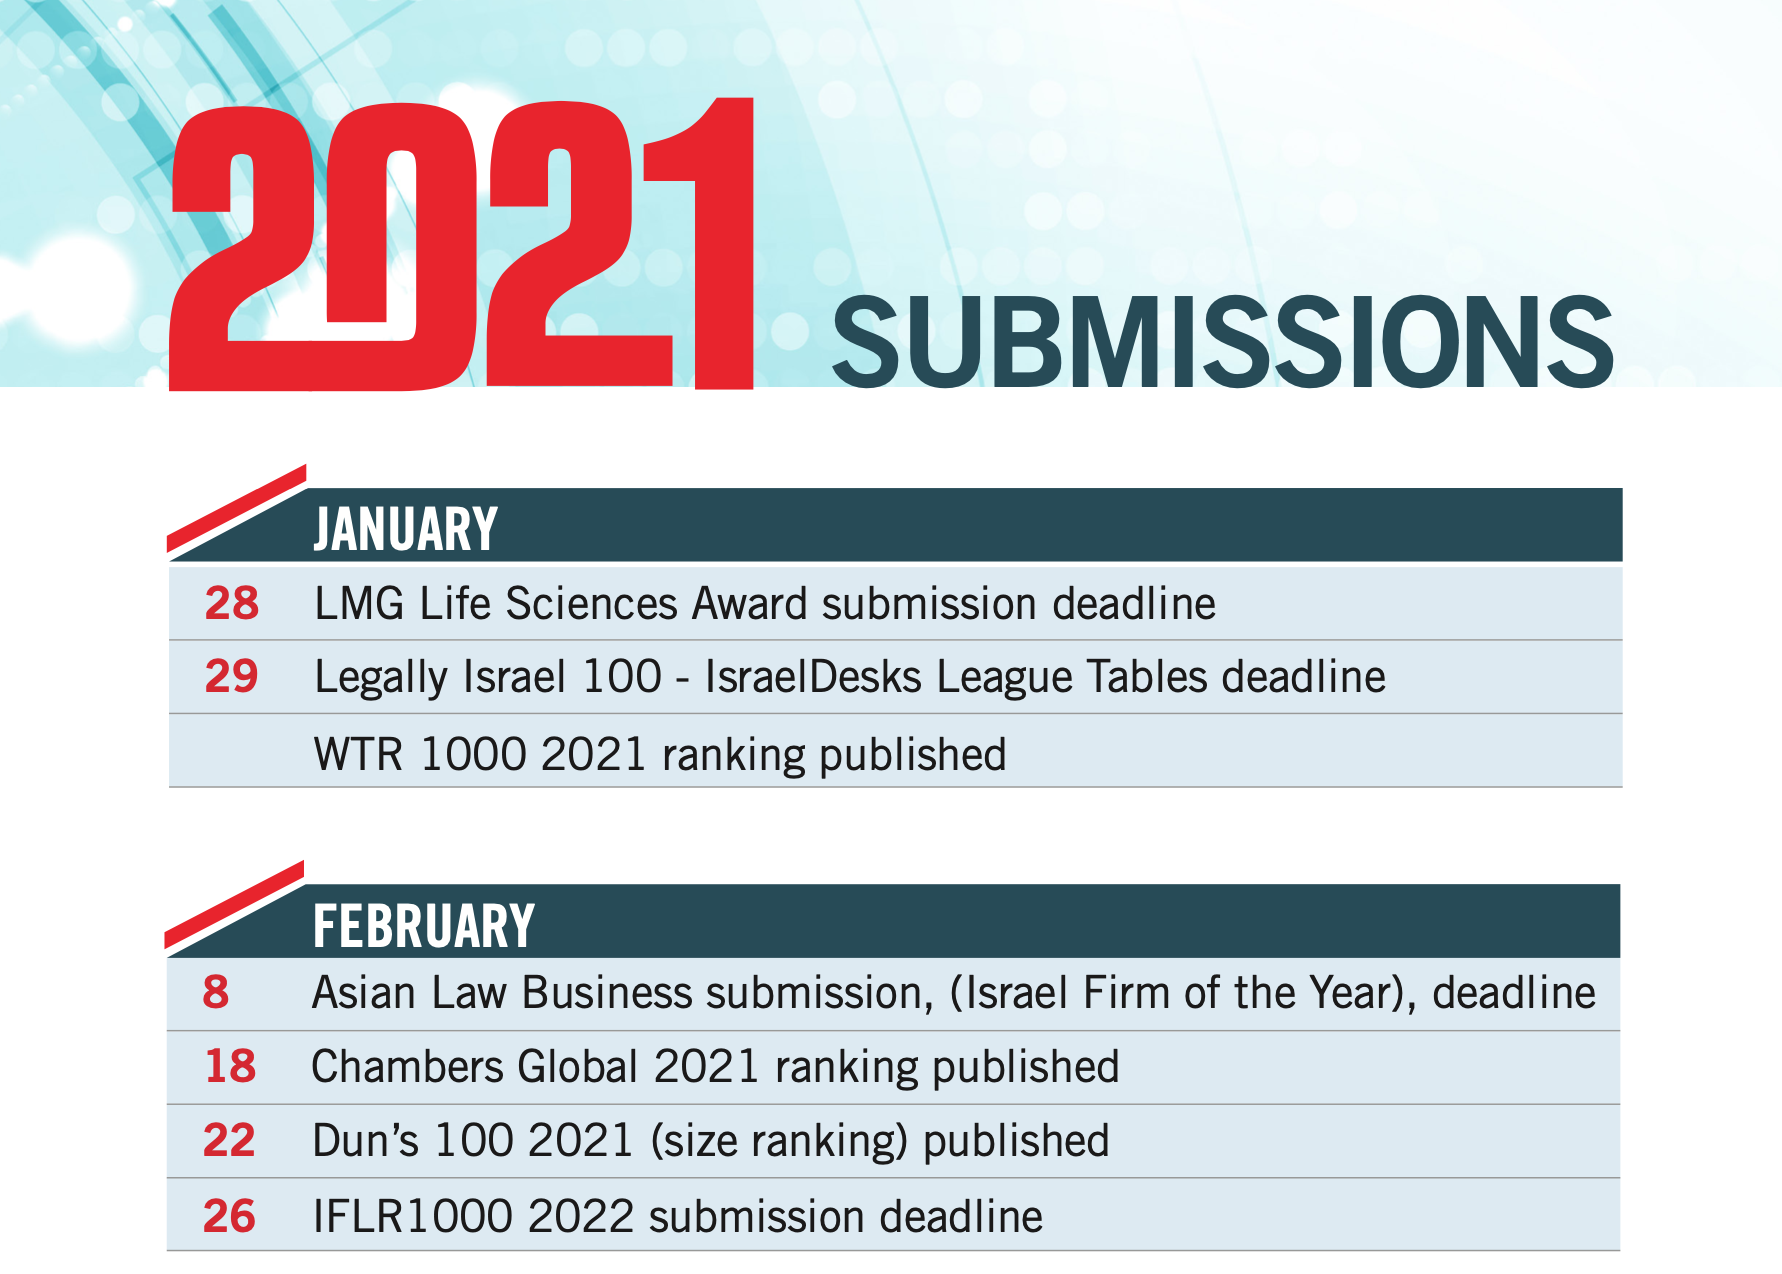 2021 Submissions Calendar for Israel